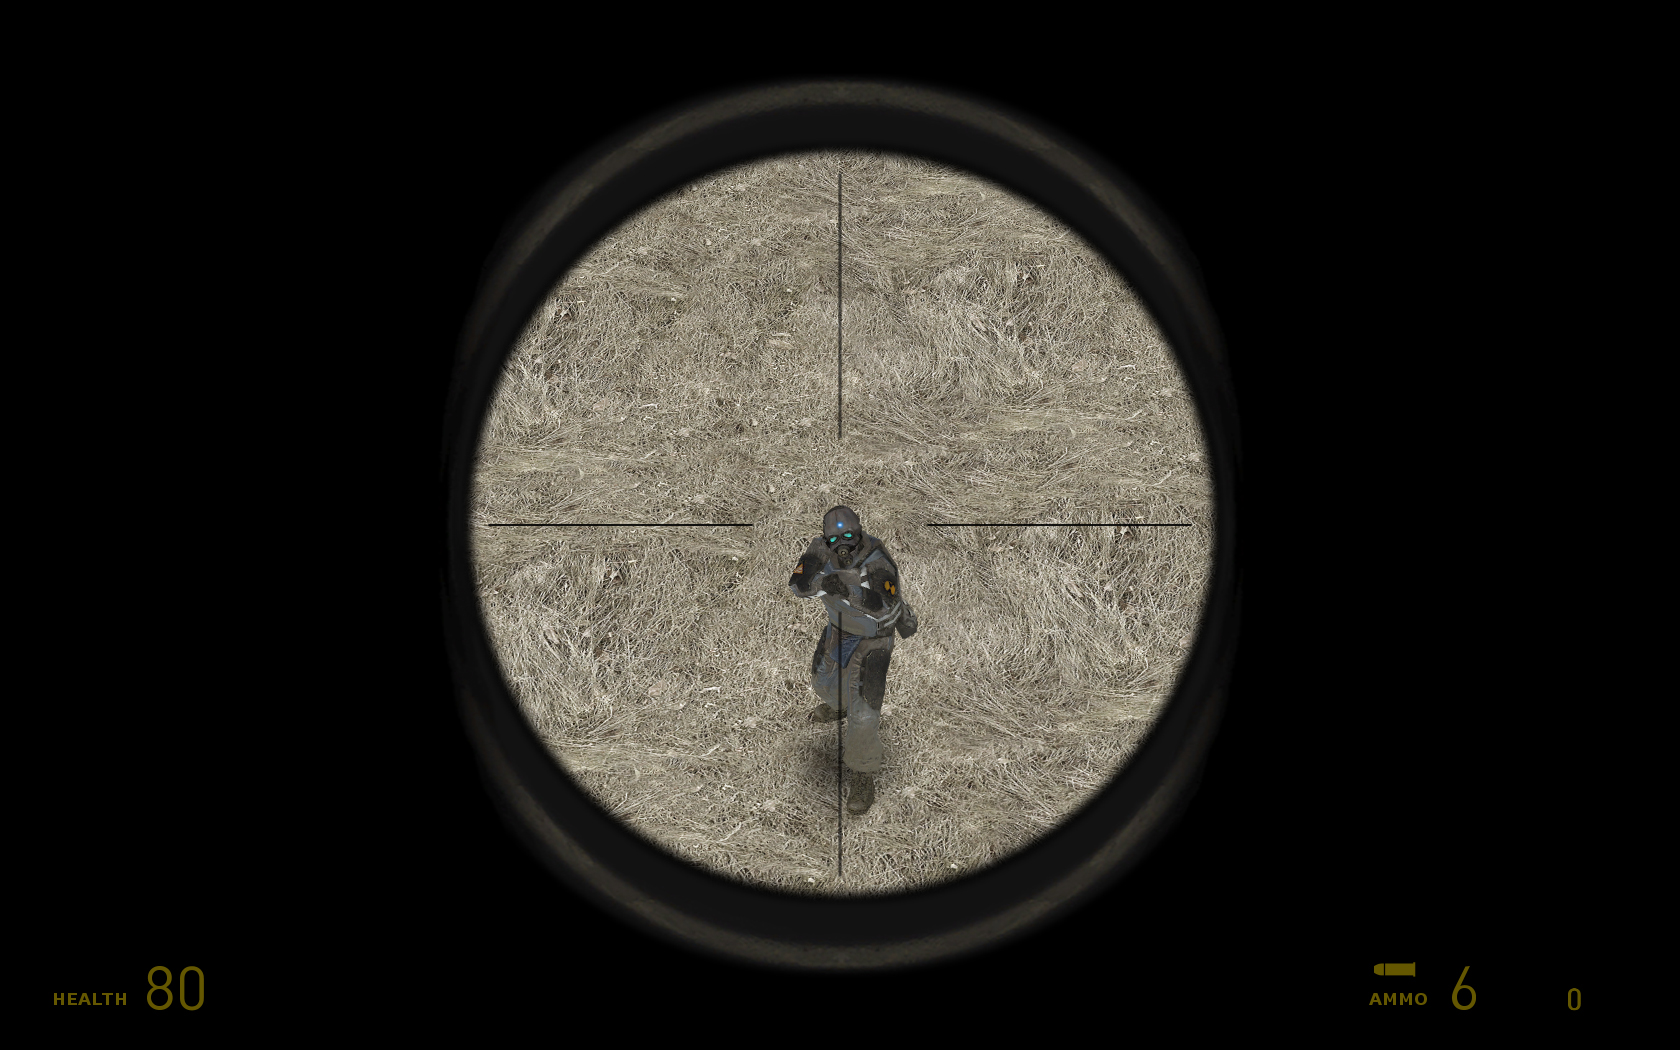 sniper scope crosshairs